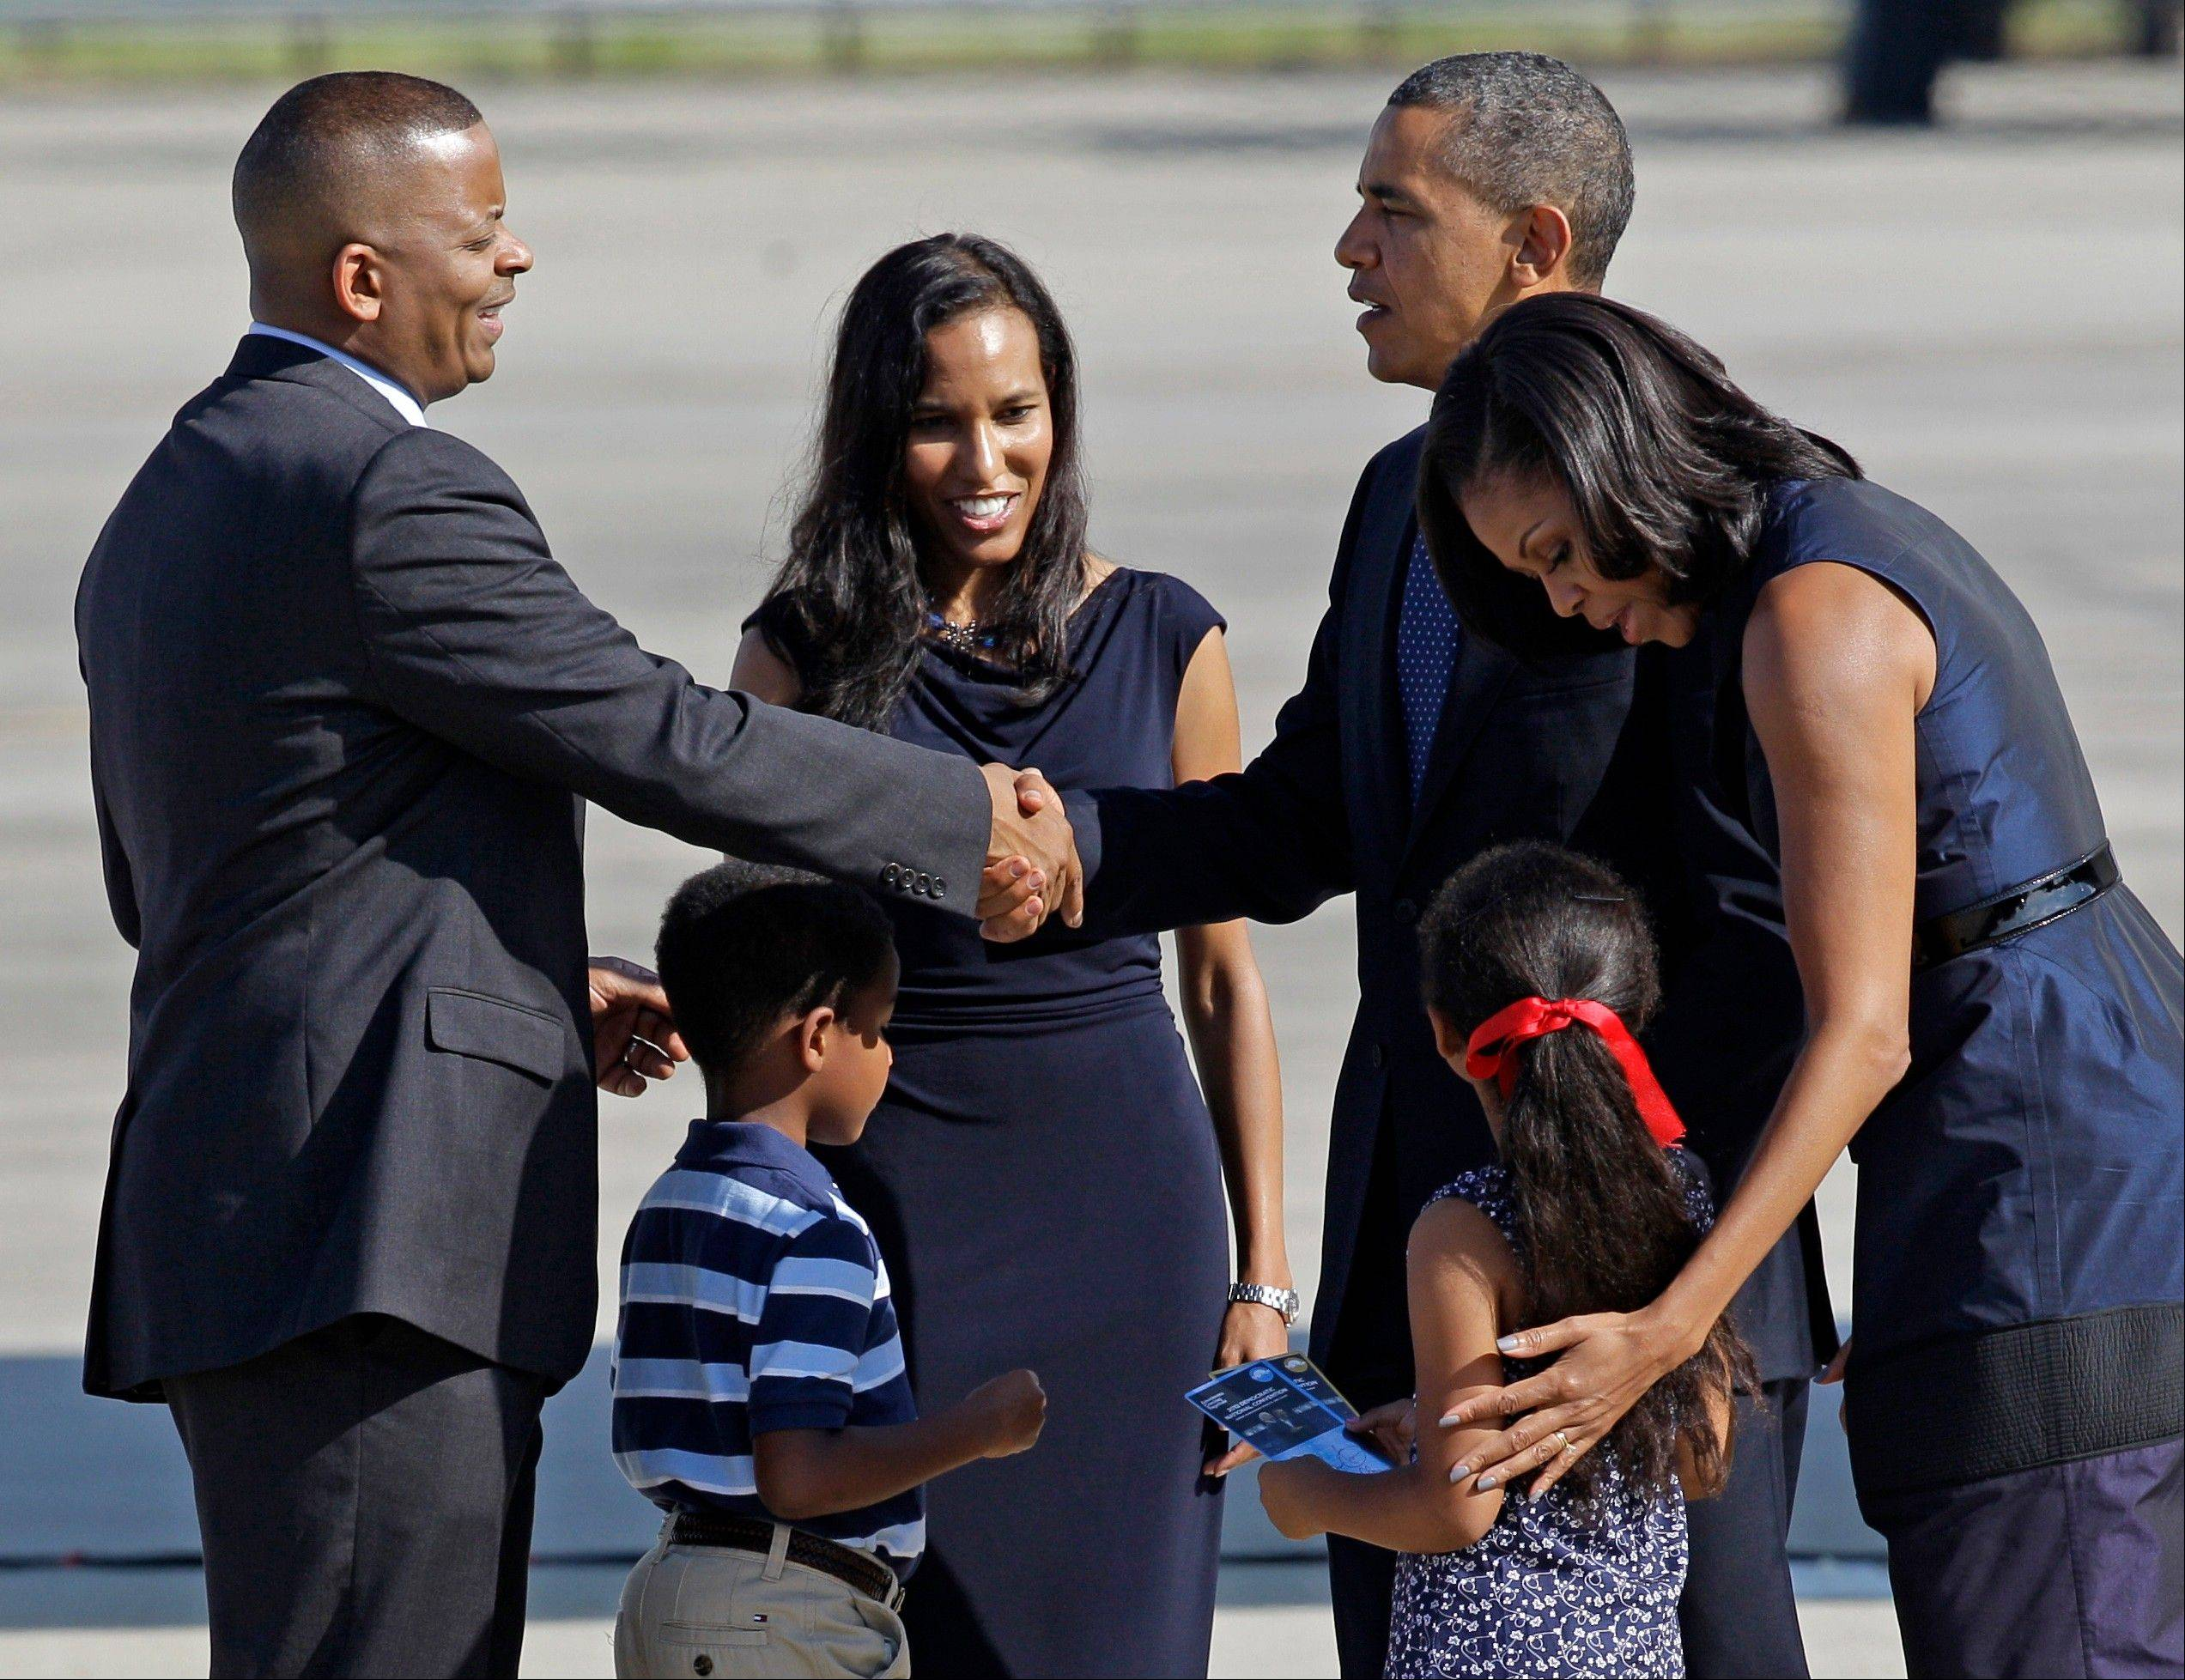 President Barack Obama shakes hands with Charlotte, N.C. Mayor Anthony Foxx, left, as first lady Michelle Obama, right, greets Foxx's children Hillary, and Zachary, before leaving leave Charlotte, N.C., after the Democratic National Convention, Friday, Sept. 7, 2012. Foxx's wife Samara Foxx is second from left.